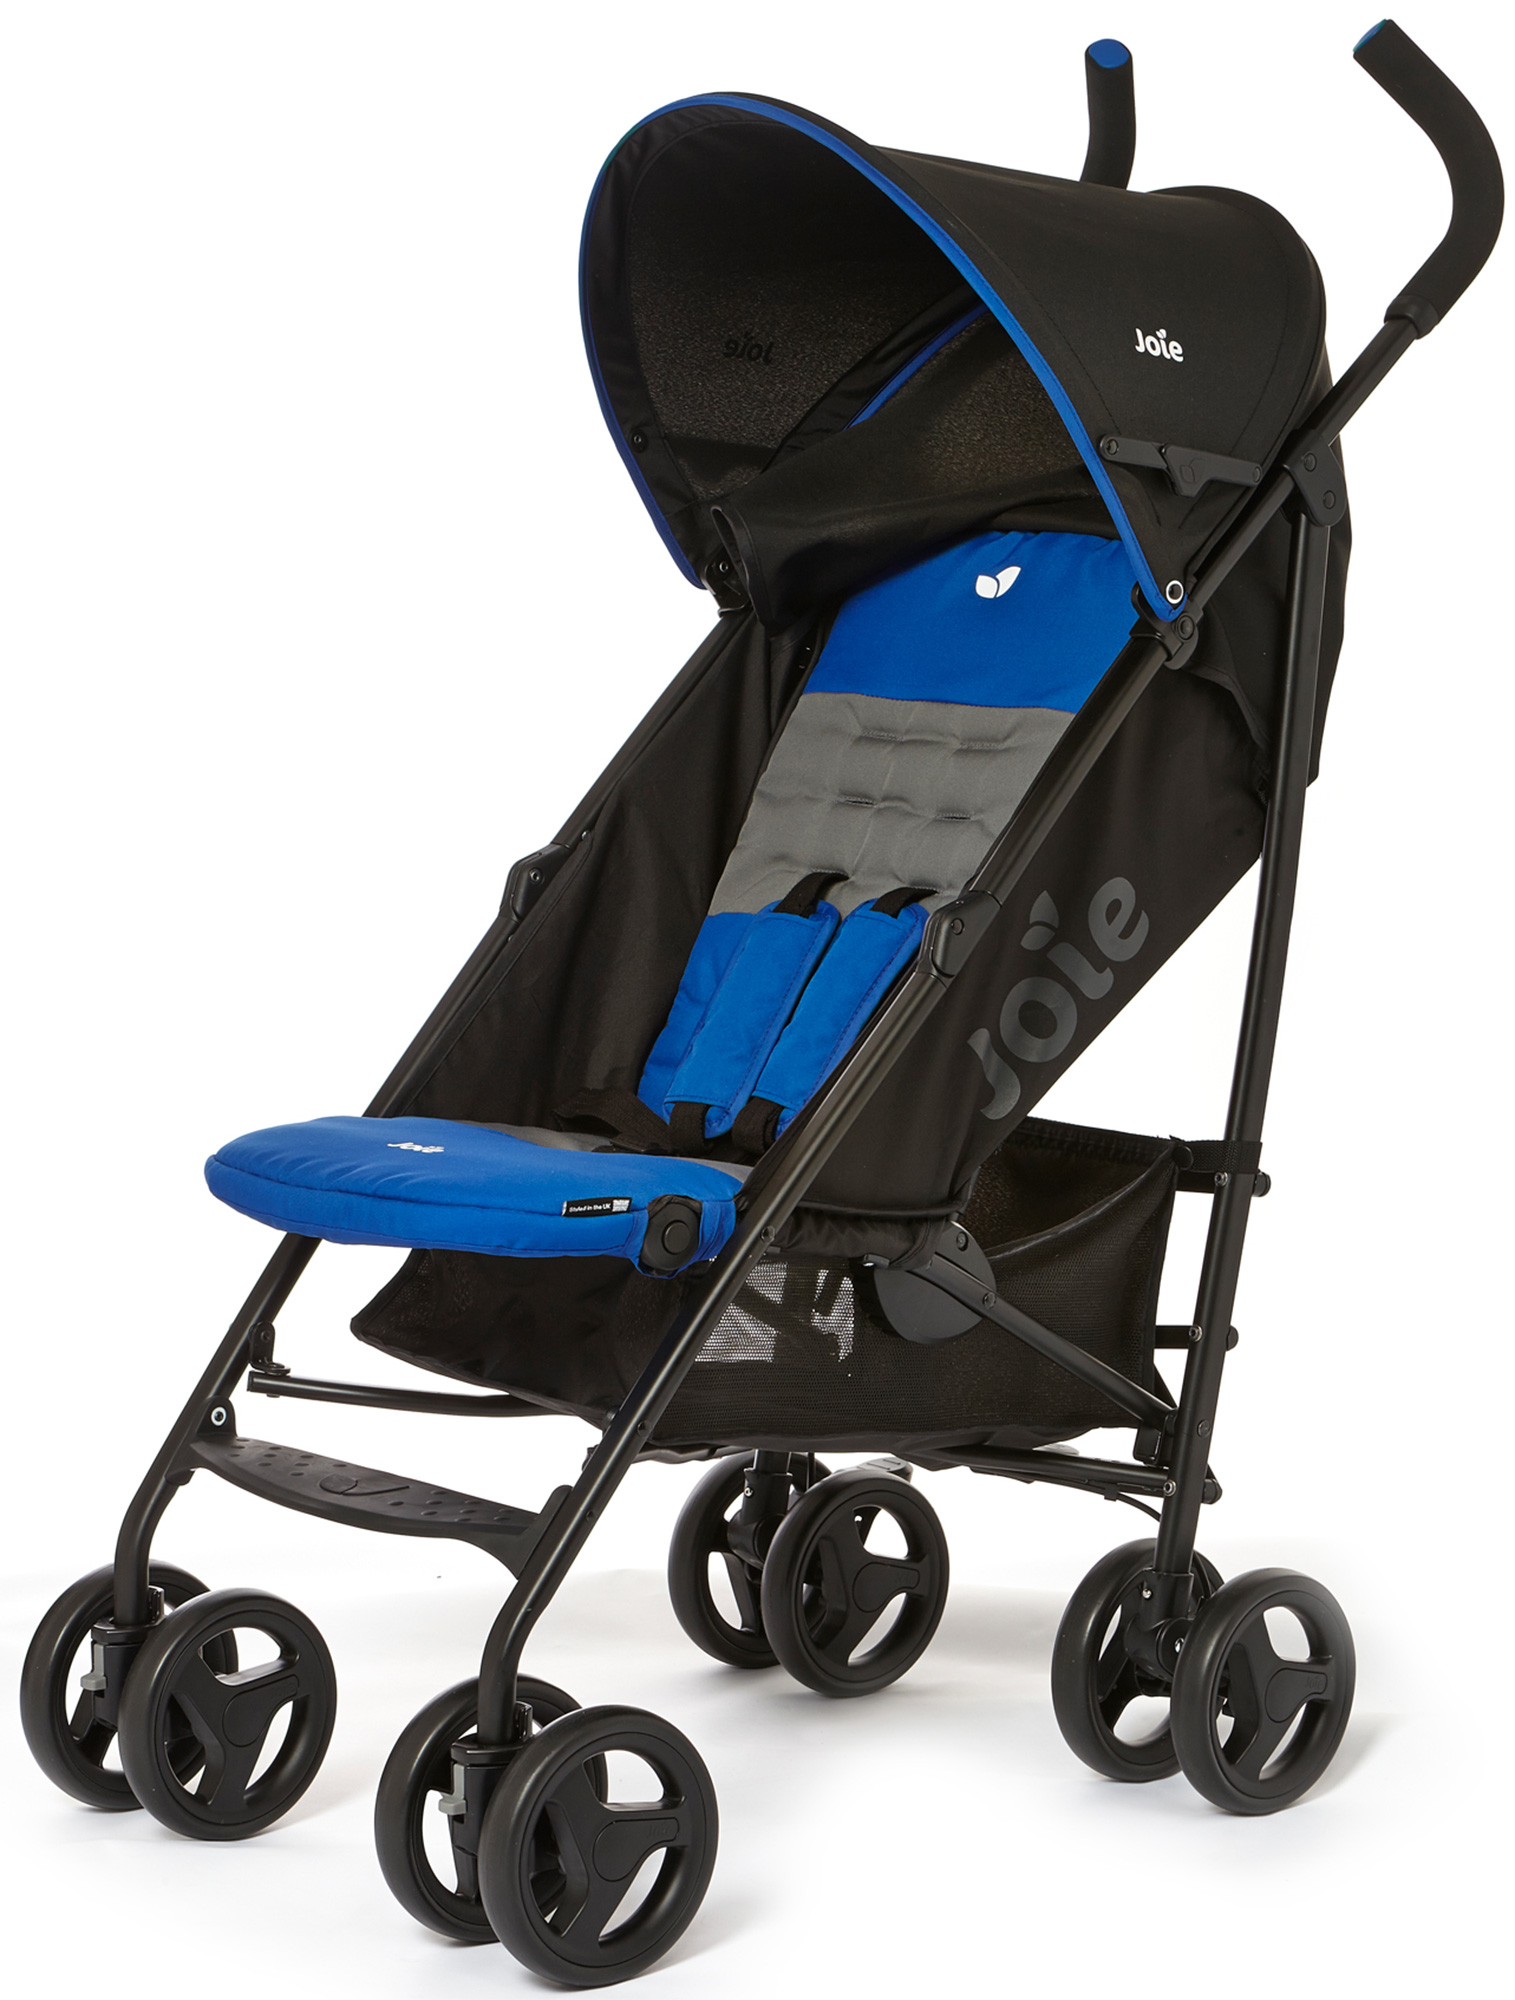 Joie Nitro Buggy : joie nitro stroller lightweight pushchair buggy baby toddler child new ebay ~ Watch28wear.com Haus und Dekorationen